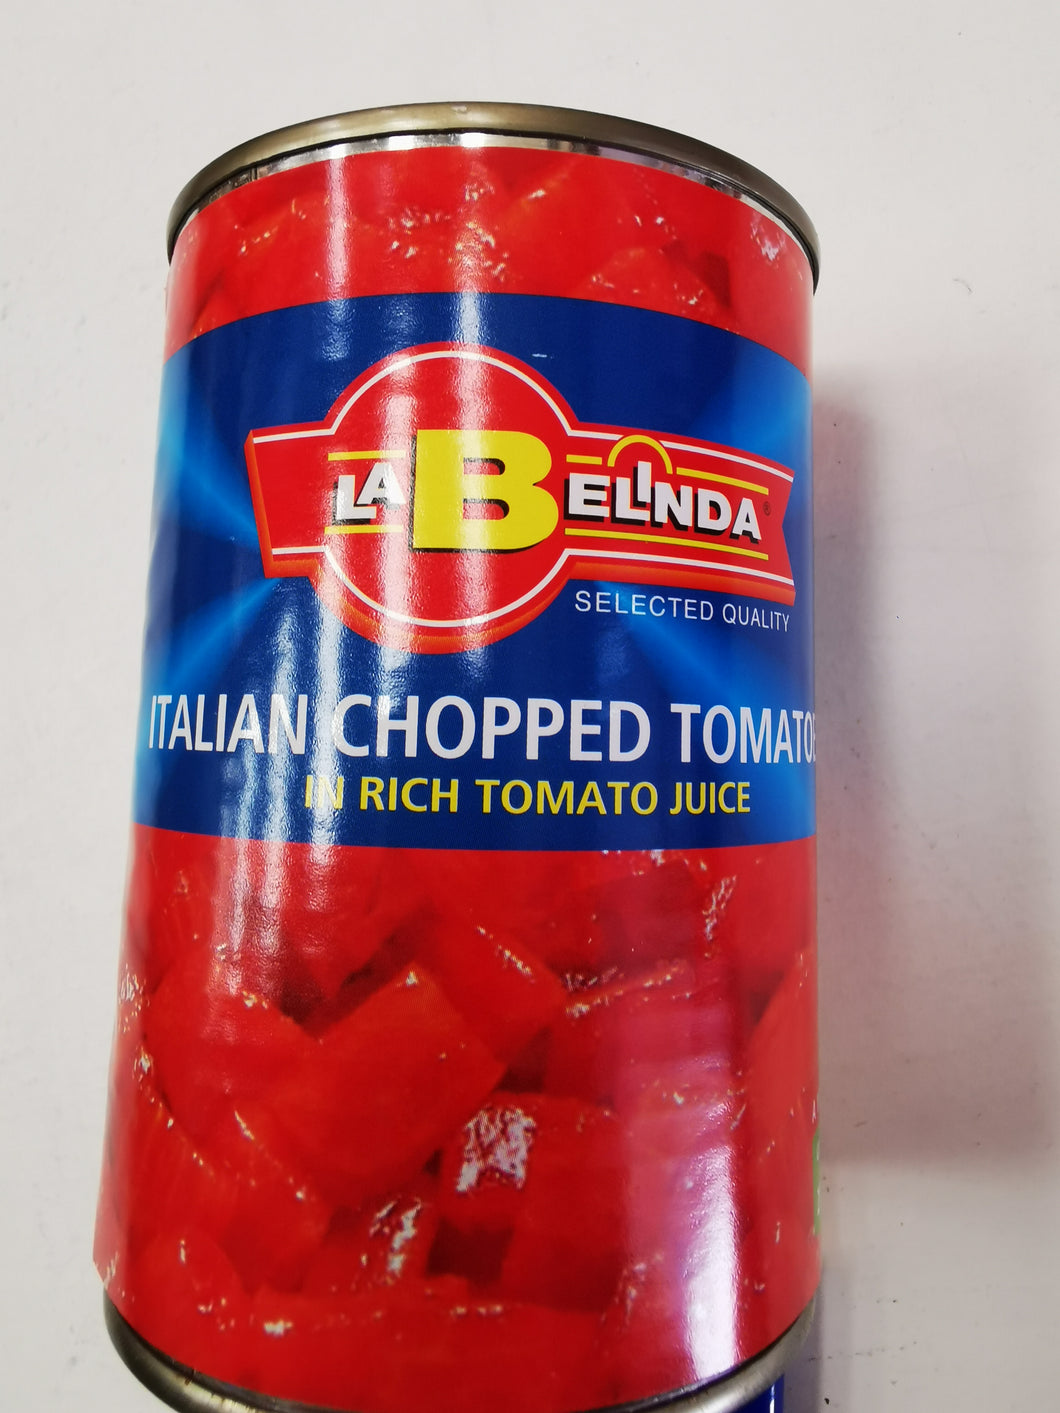 Italian Chopped Tomatoes (1x400g)